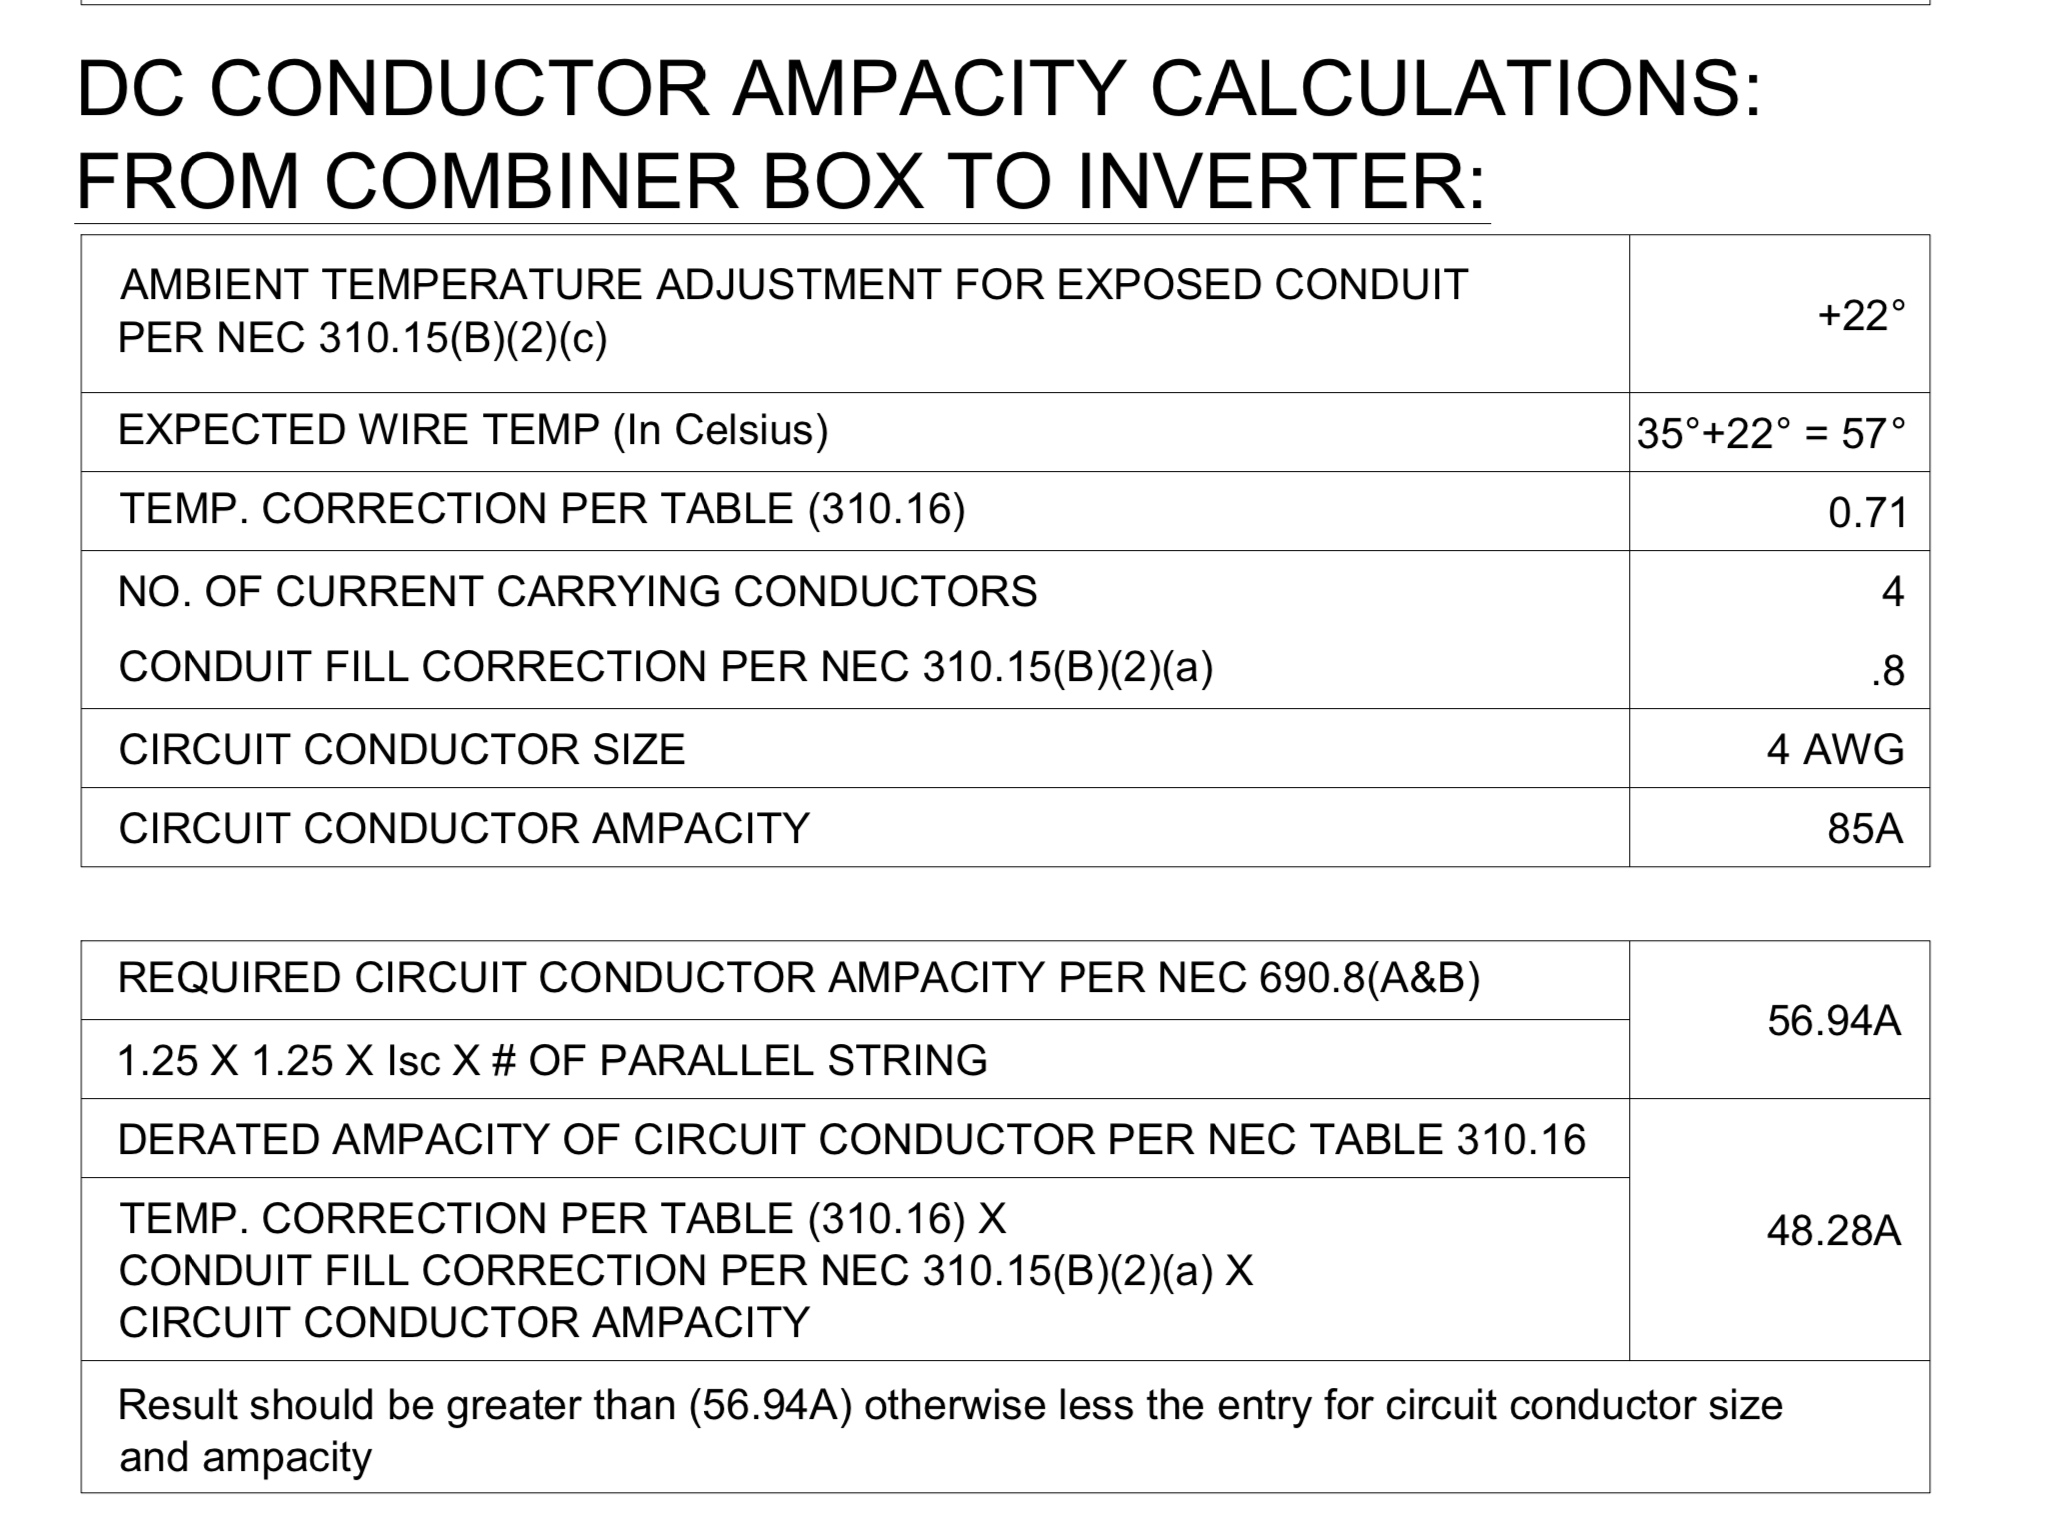 Dc conductor ampacity calculations help northernarizona windandsun i used an online company to do my solar site plan packet for my local building safety department they have done some calculations that look a little off keyboard keysfo Image collections